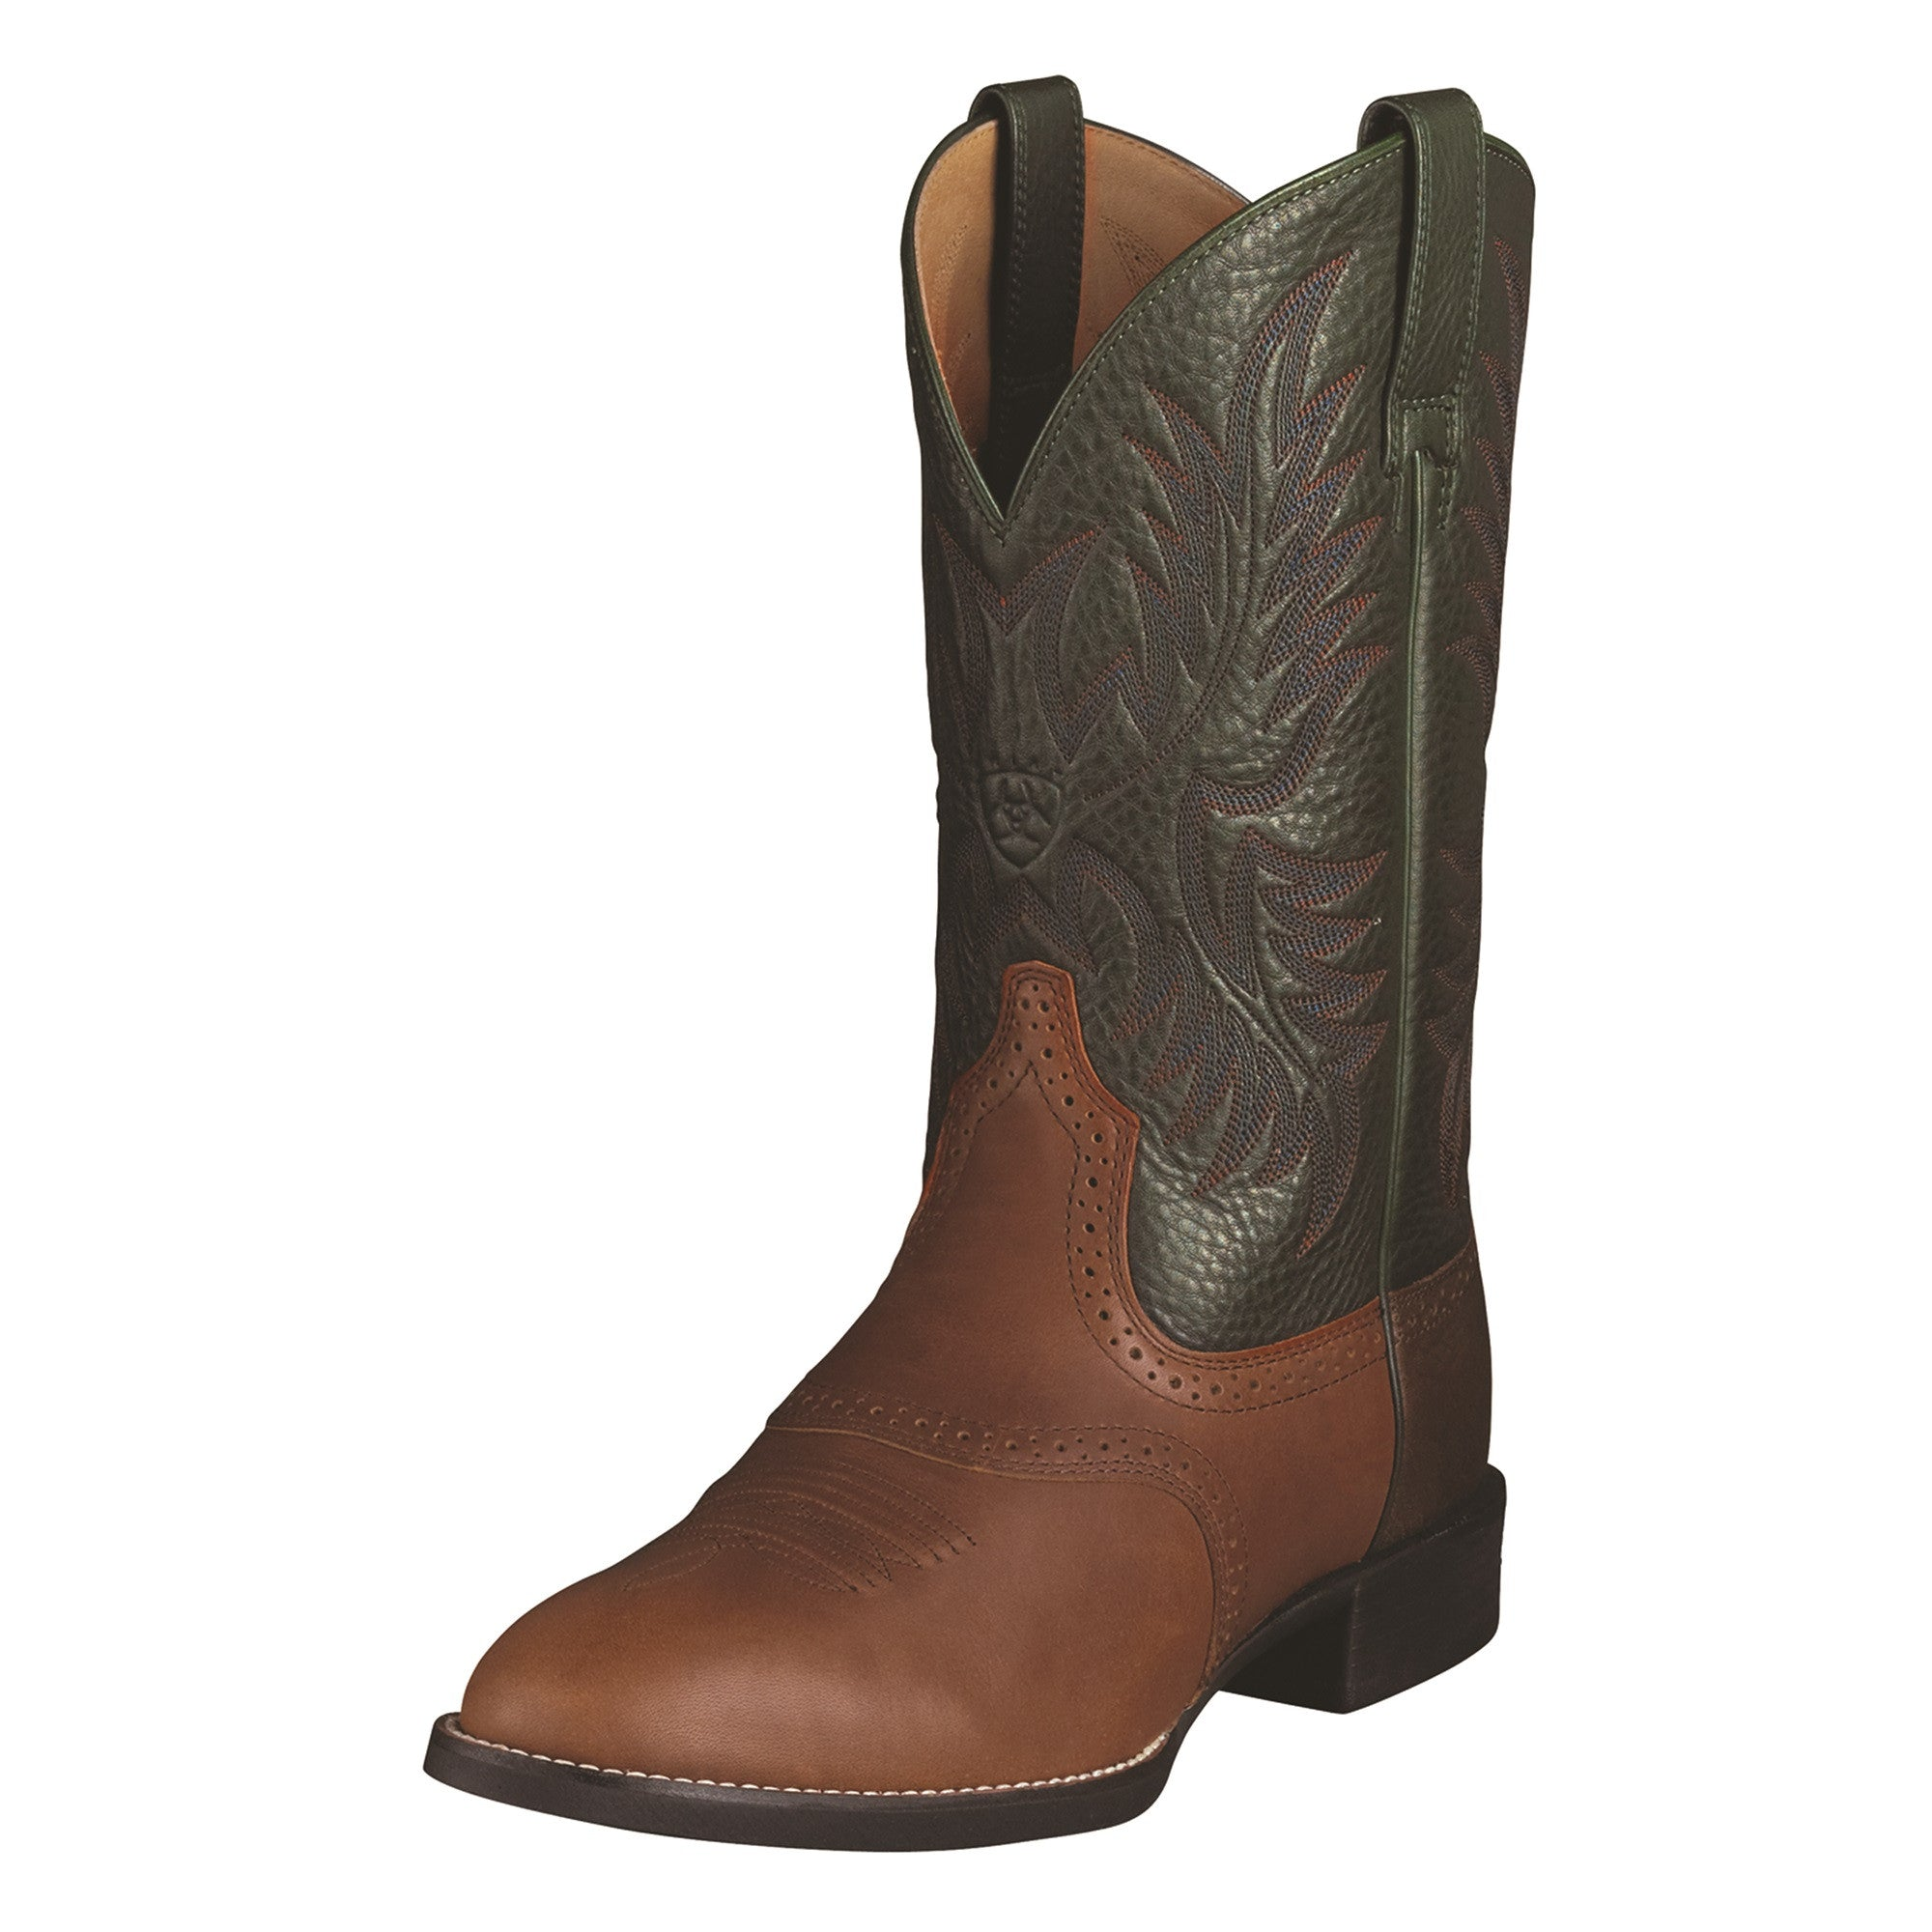 Men's Ariat Heritage Stockman Boot #10002258